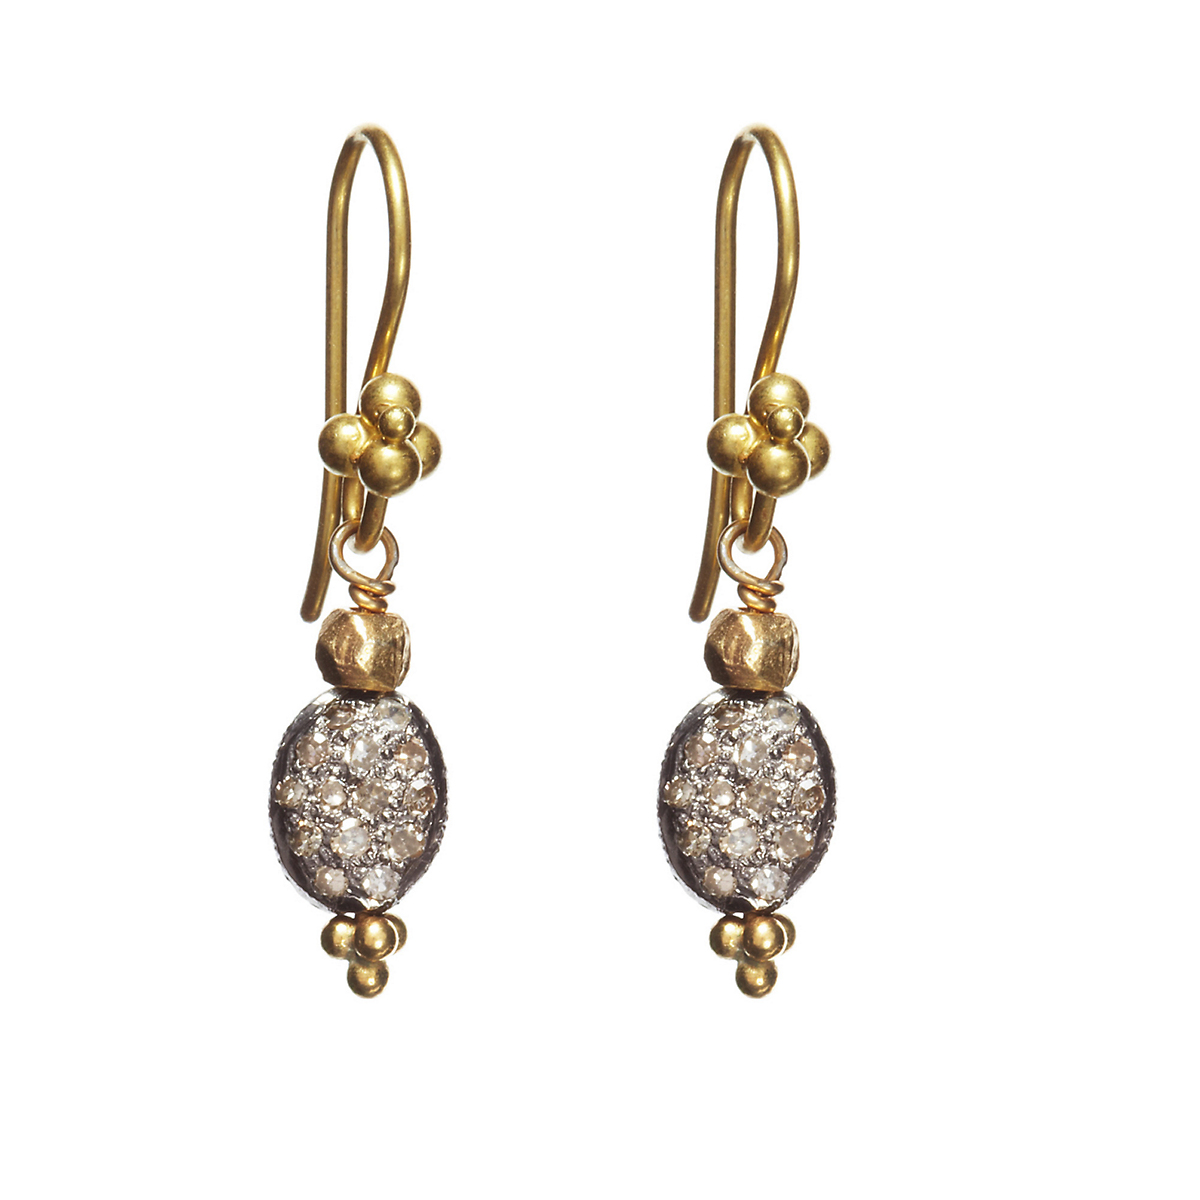 Nikki Baker Lusso Petite Bean Diamond Earrings